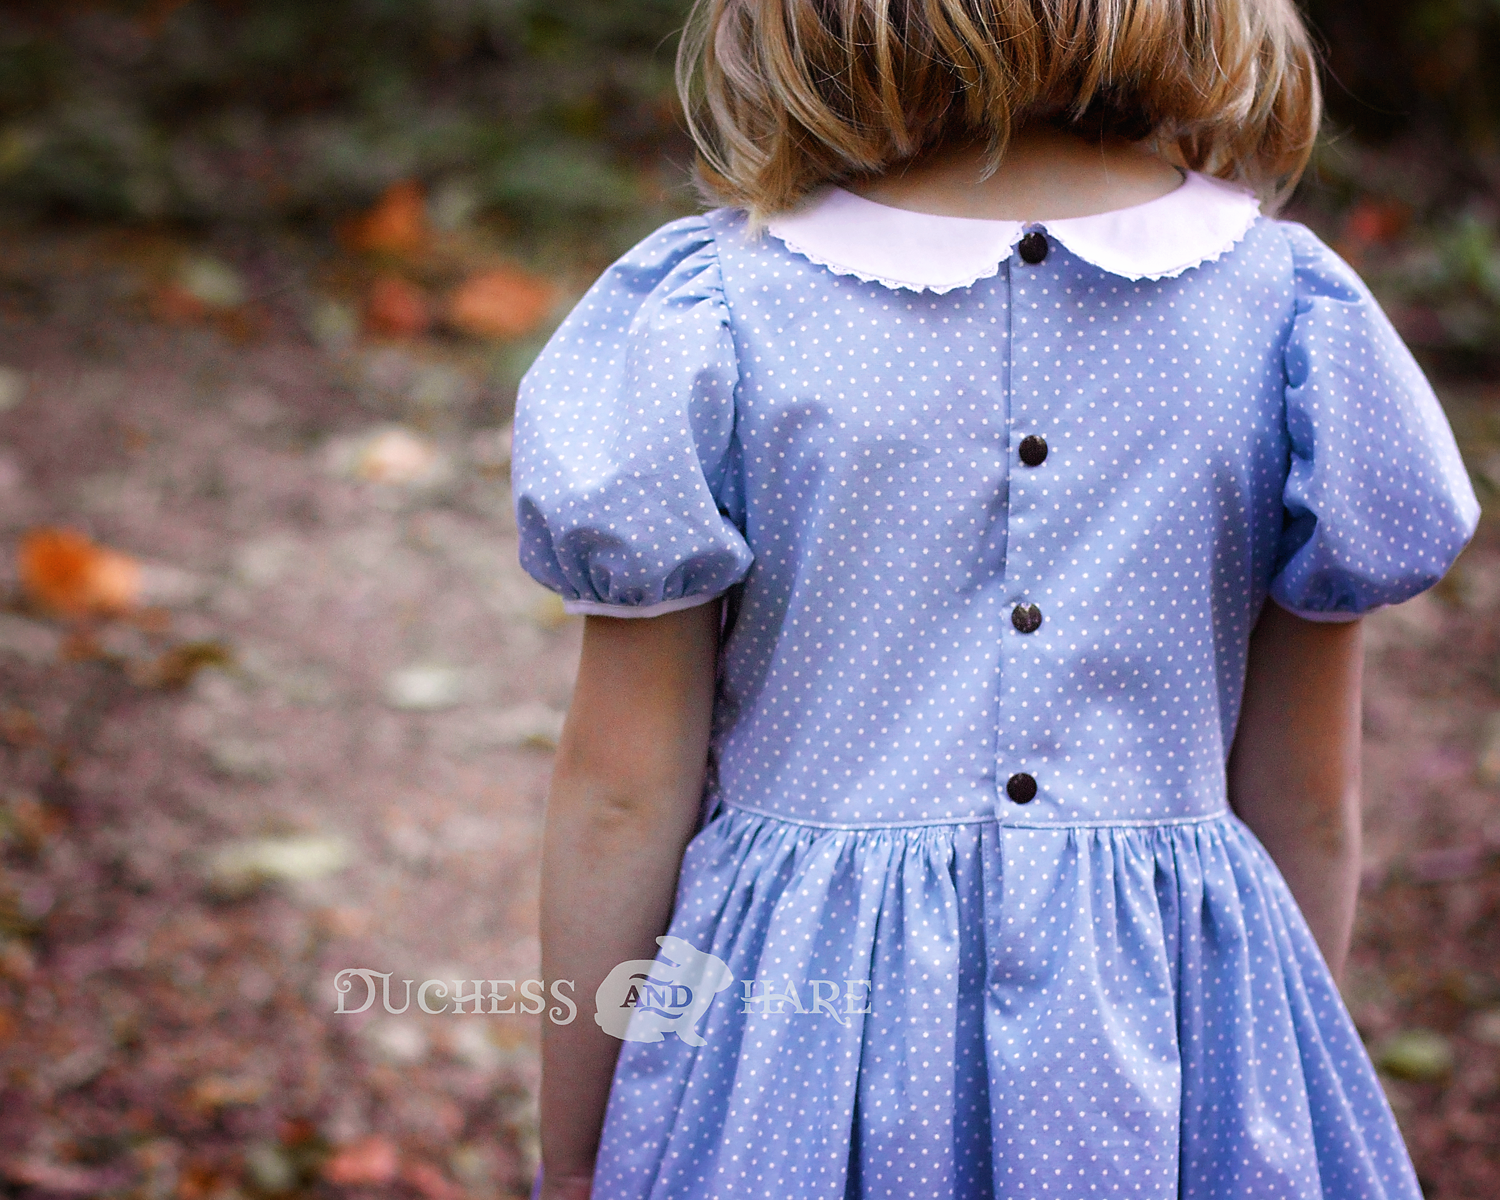 Back of little girl wearing a blue dress with small white polkadots.  The dress has short puff sleeves and a white collar with lace trim.